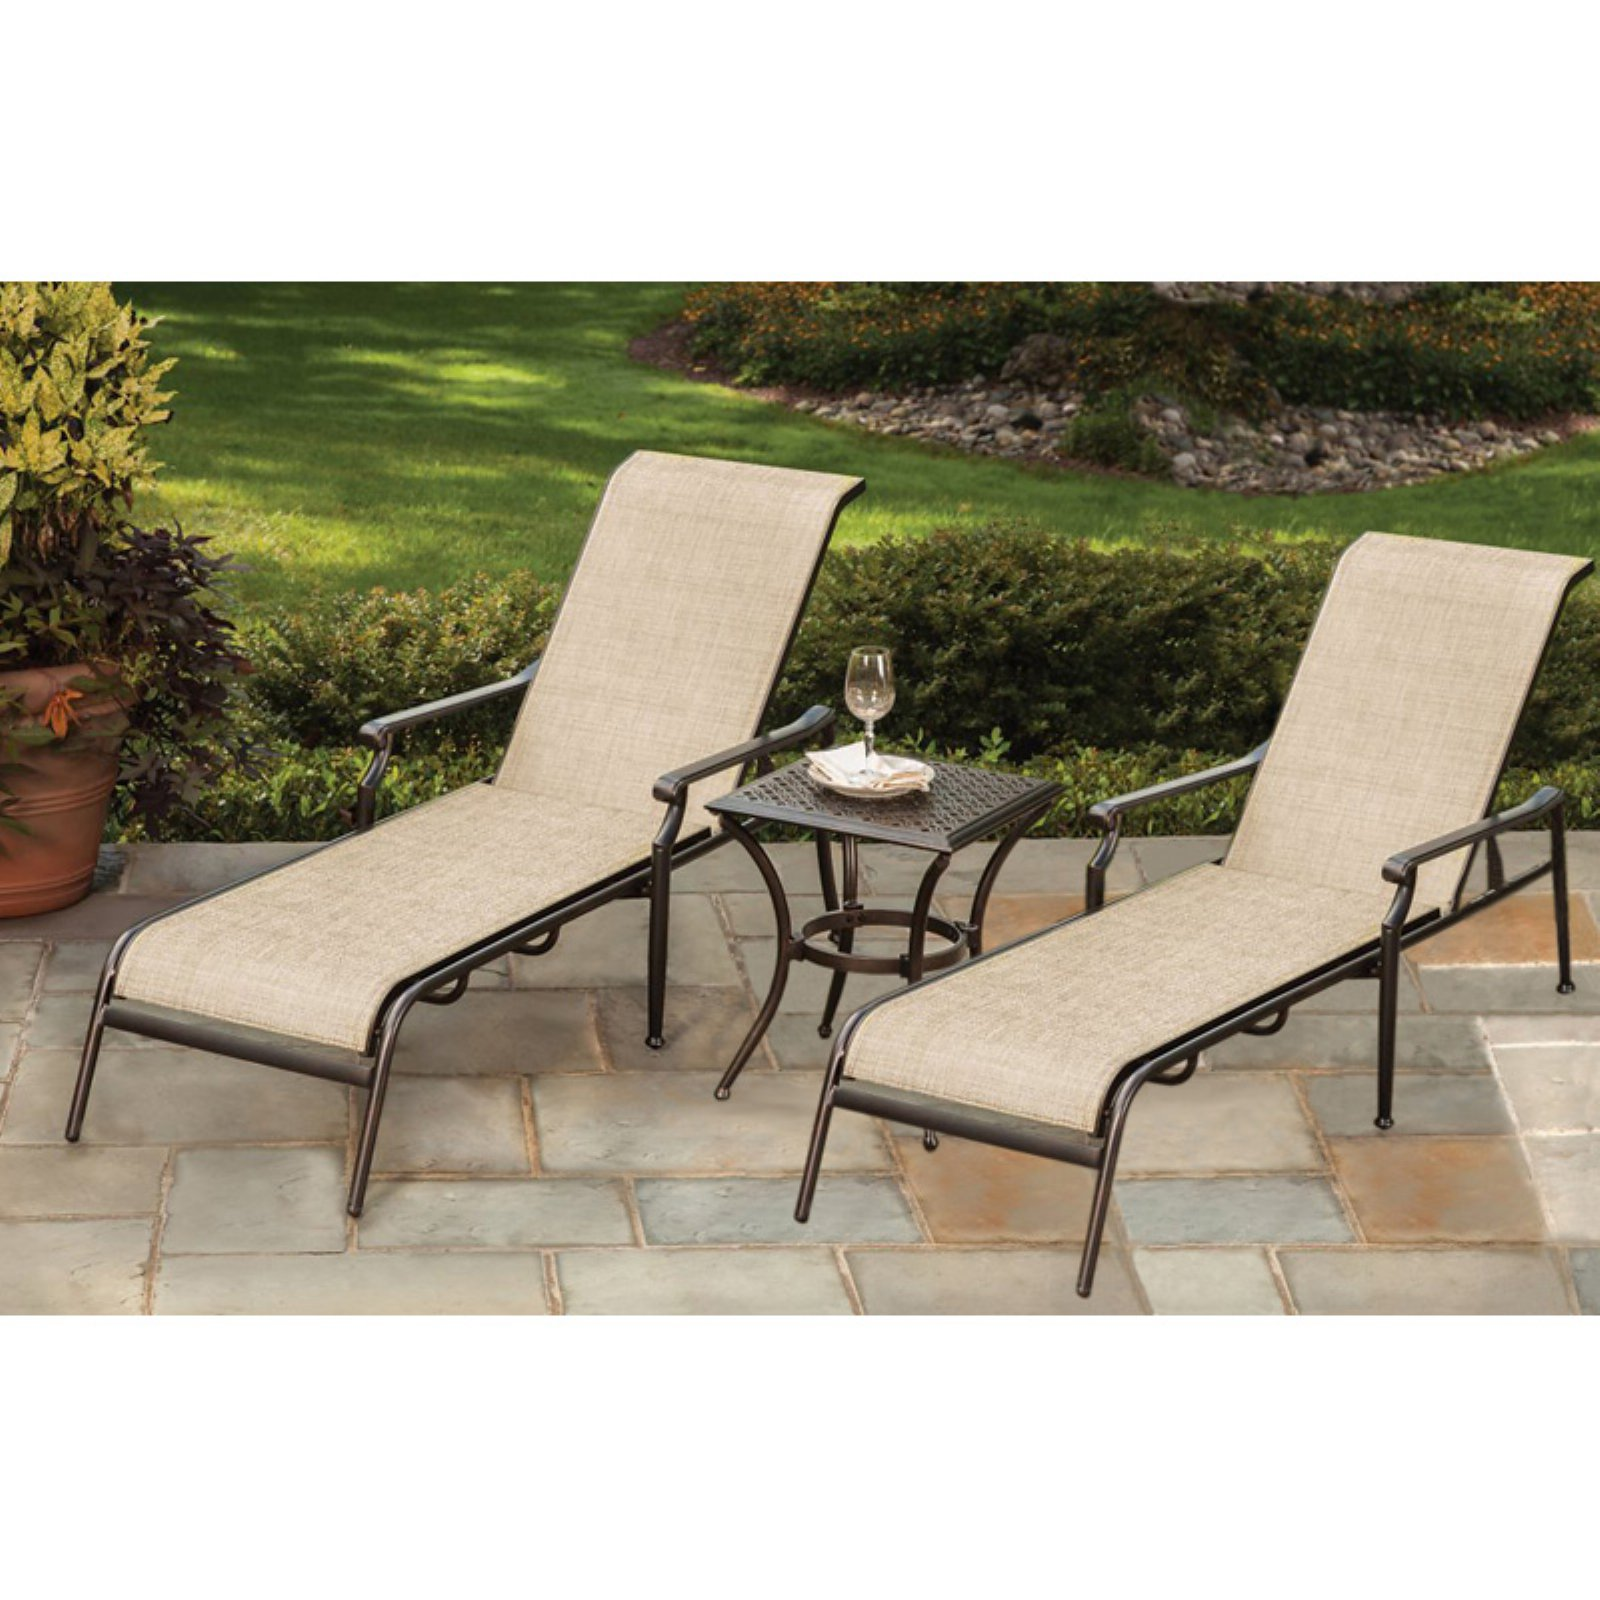 Oakland Living Bali 3 Piece Outdoor Chaise Lounge Set